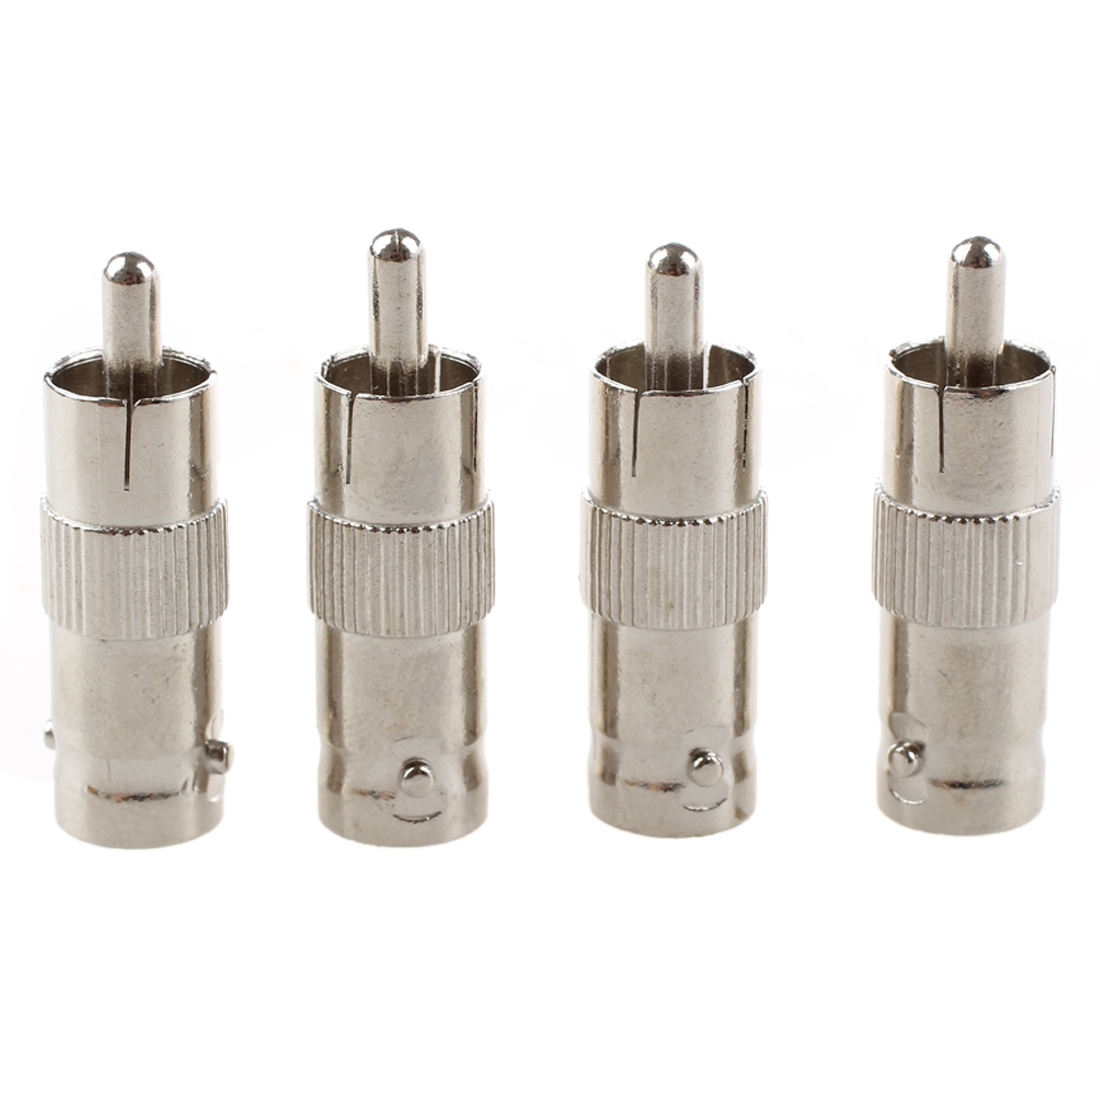 DSHA New Hot 10Pcs  BNC Female TO RCA Male Plug COAX Adapter Connector dsha new hot 10pcs gold tone male rca plug audio connector metal spring adapter